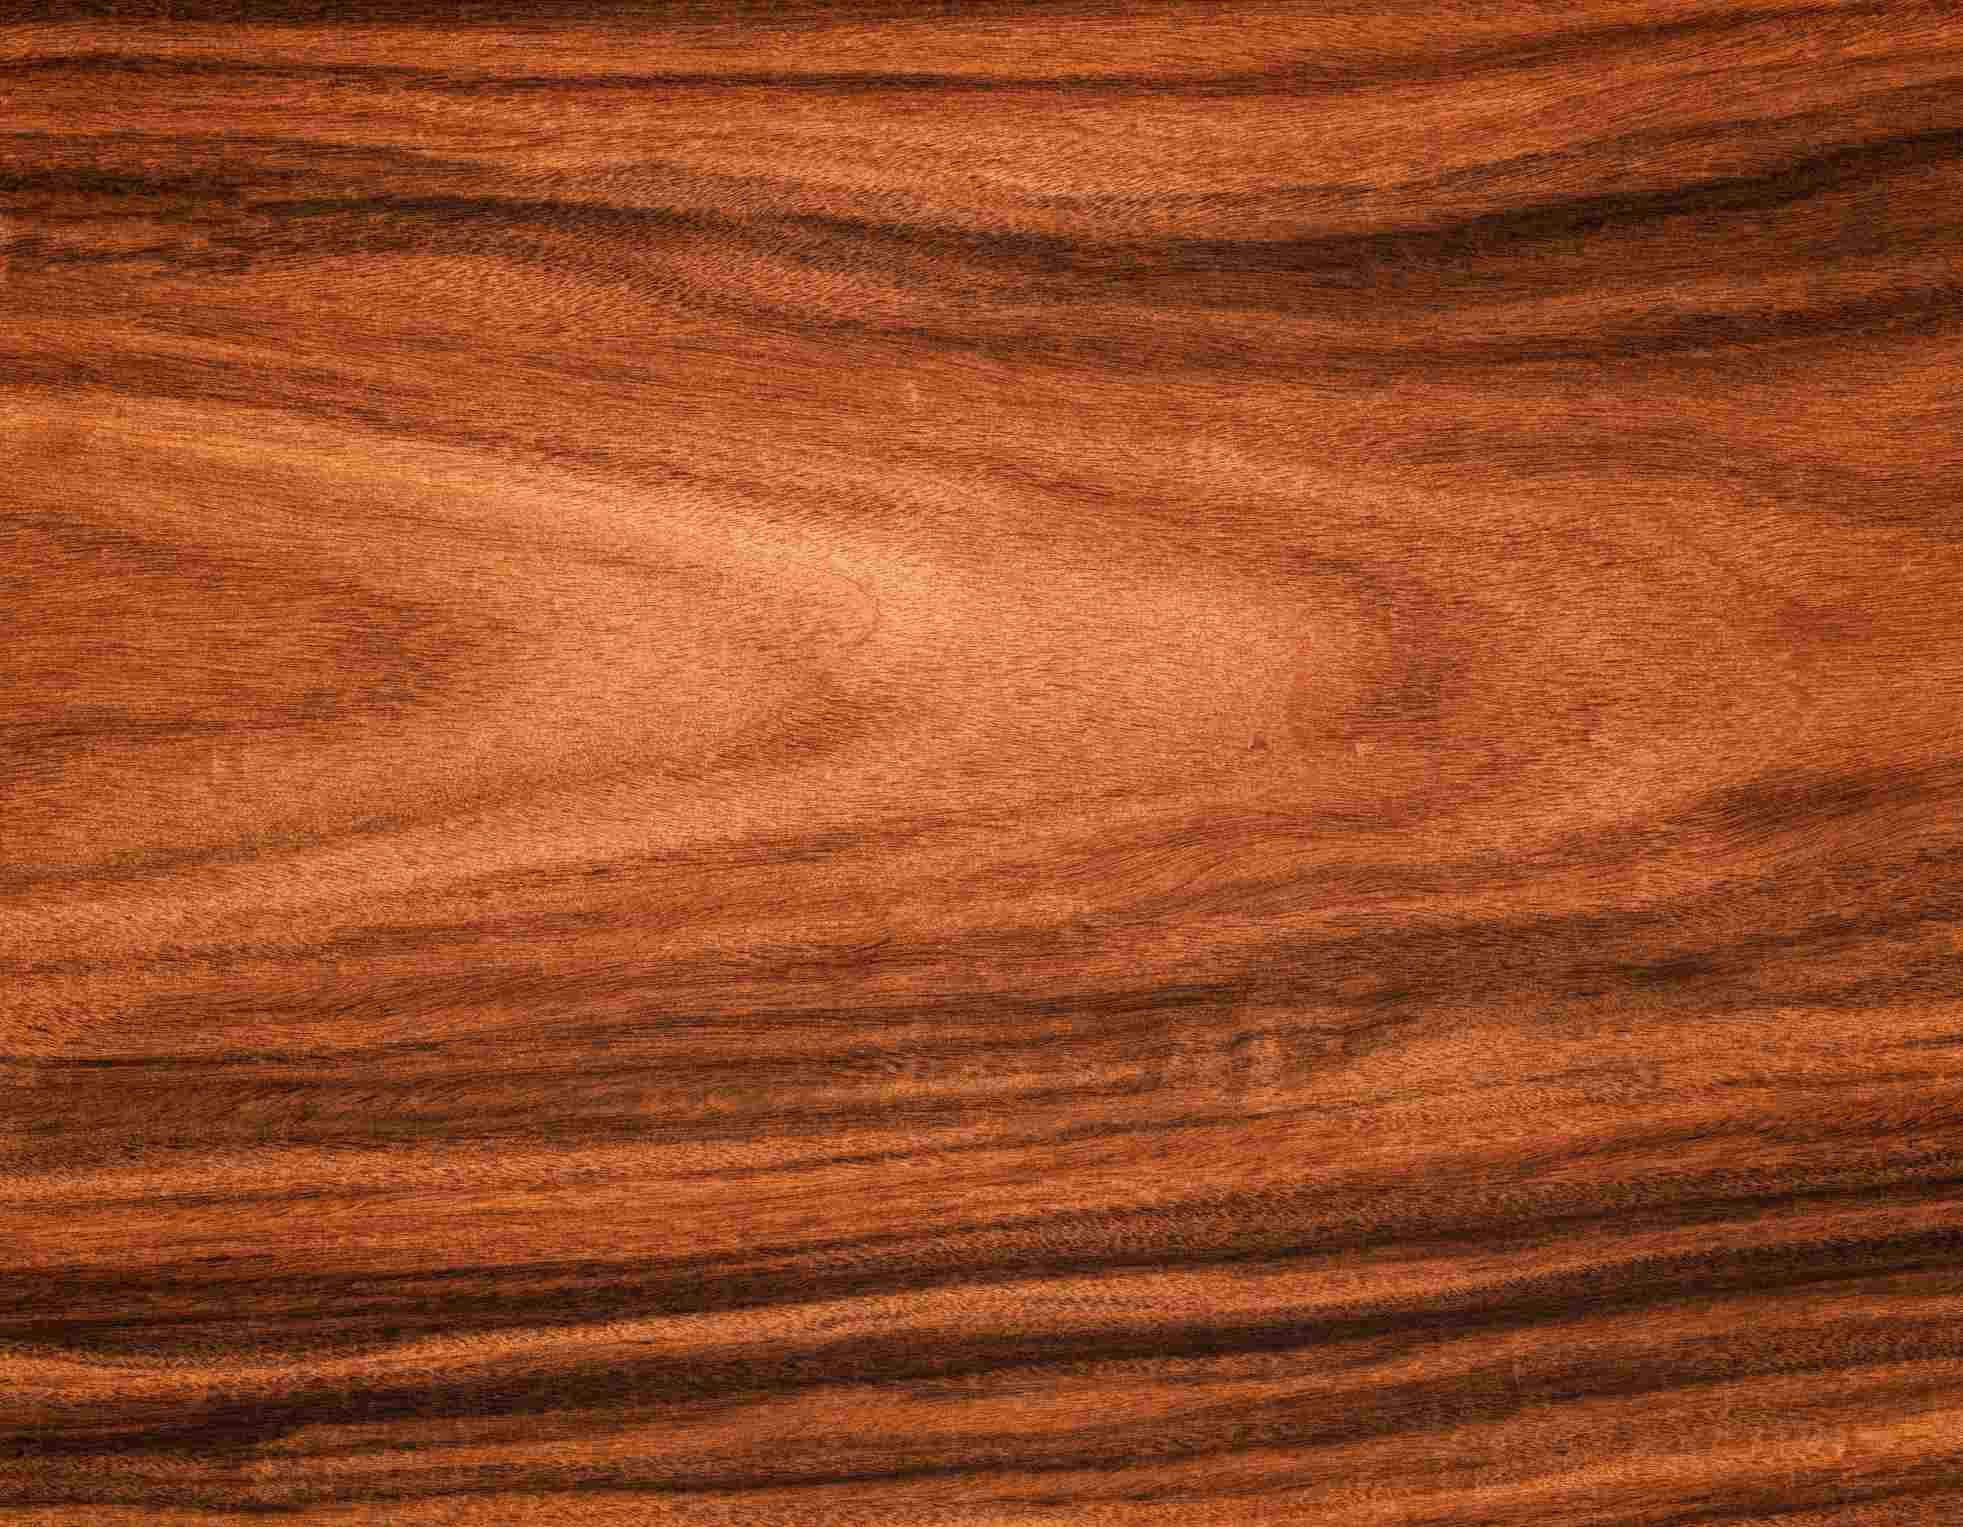 mesquite hardwood flooring price of hardwood species for spindle turning the best wood within natural rosewood texture